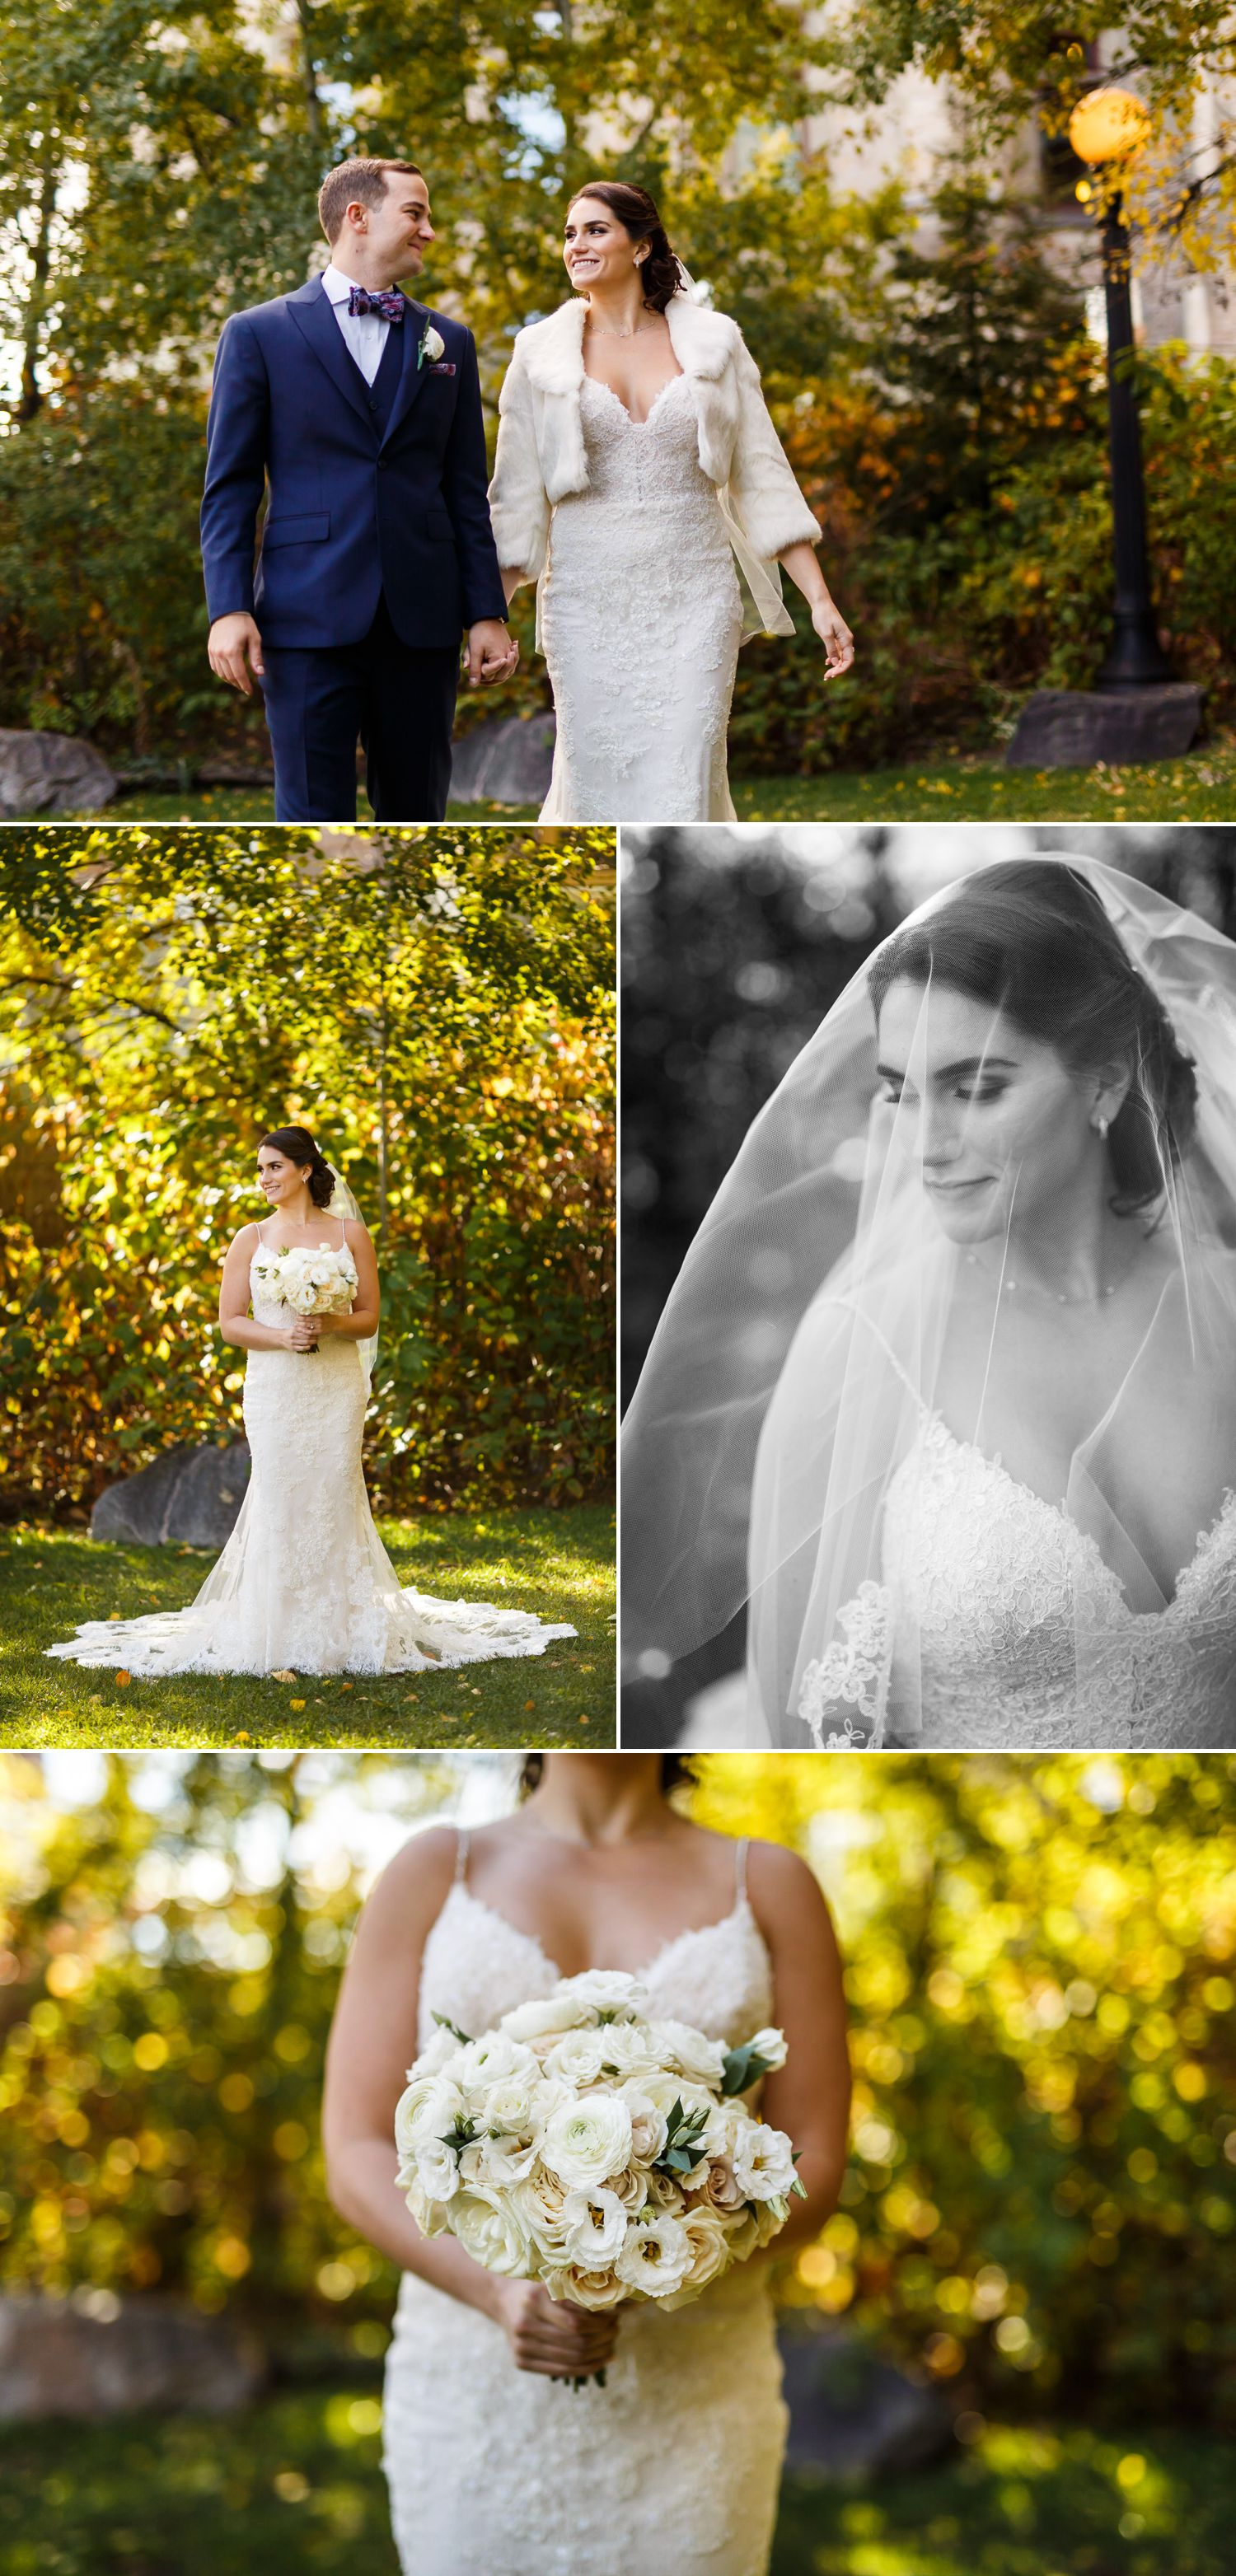 Bridal portraits taken in the fall outside The Museum of Nature